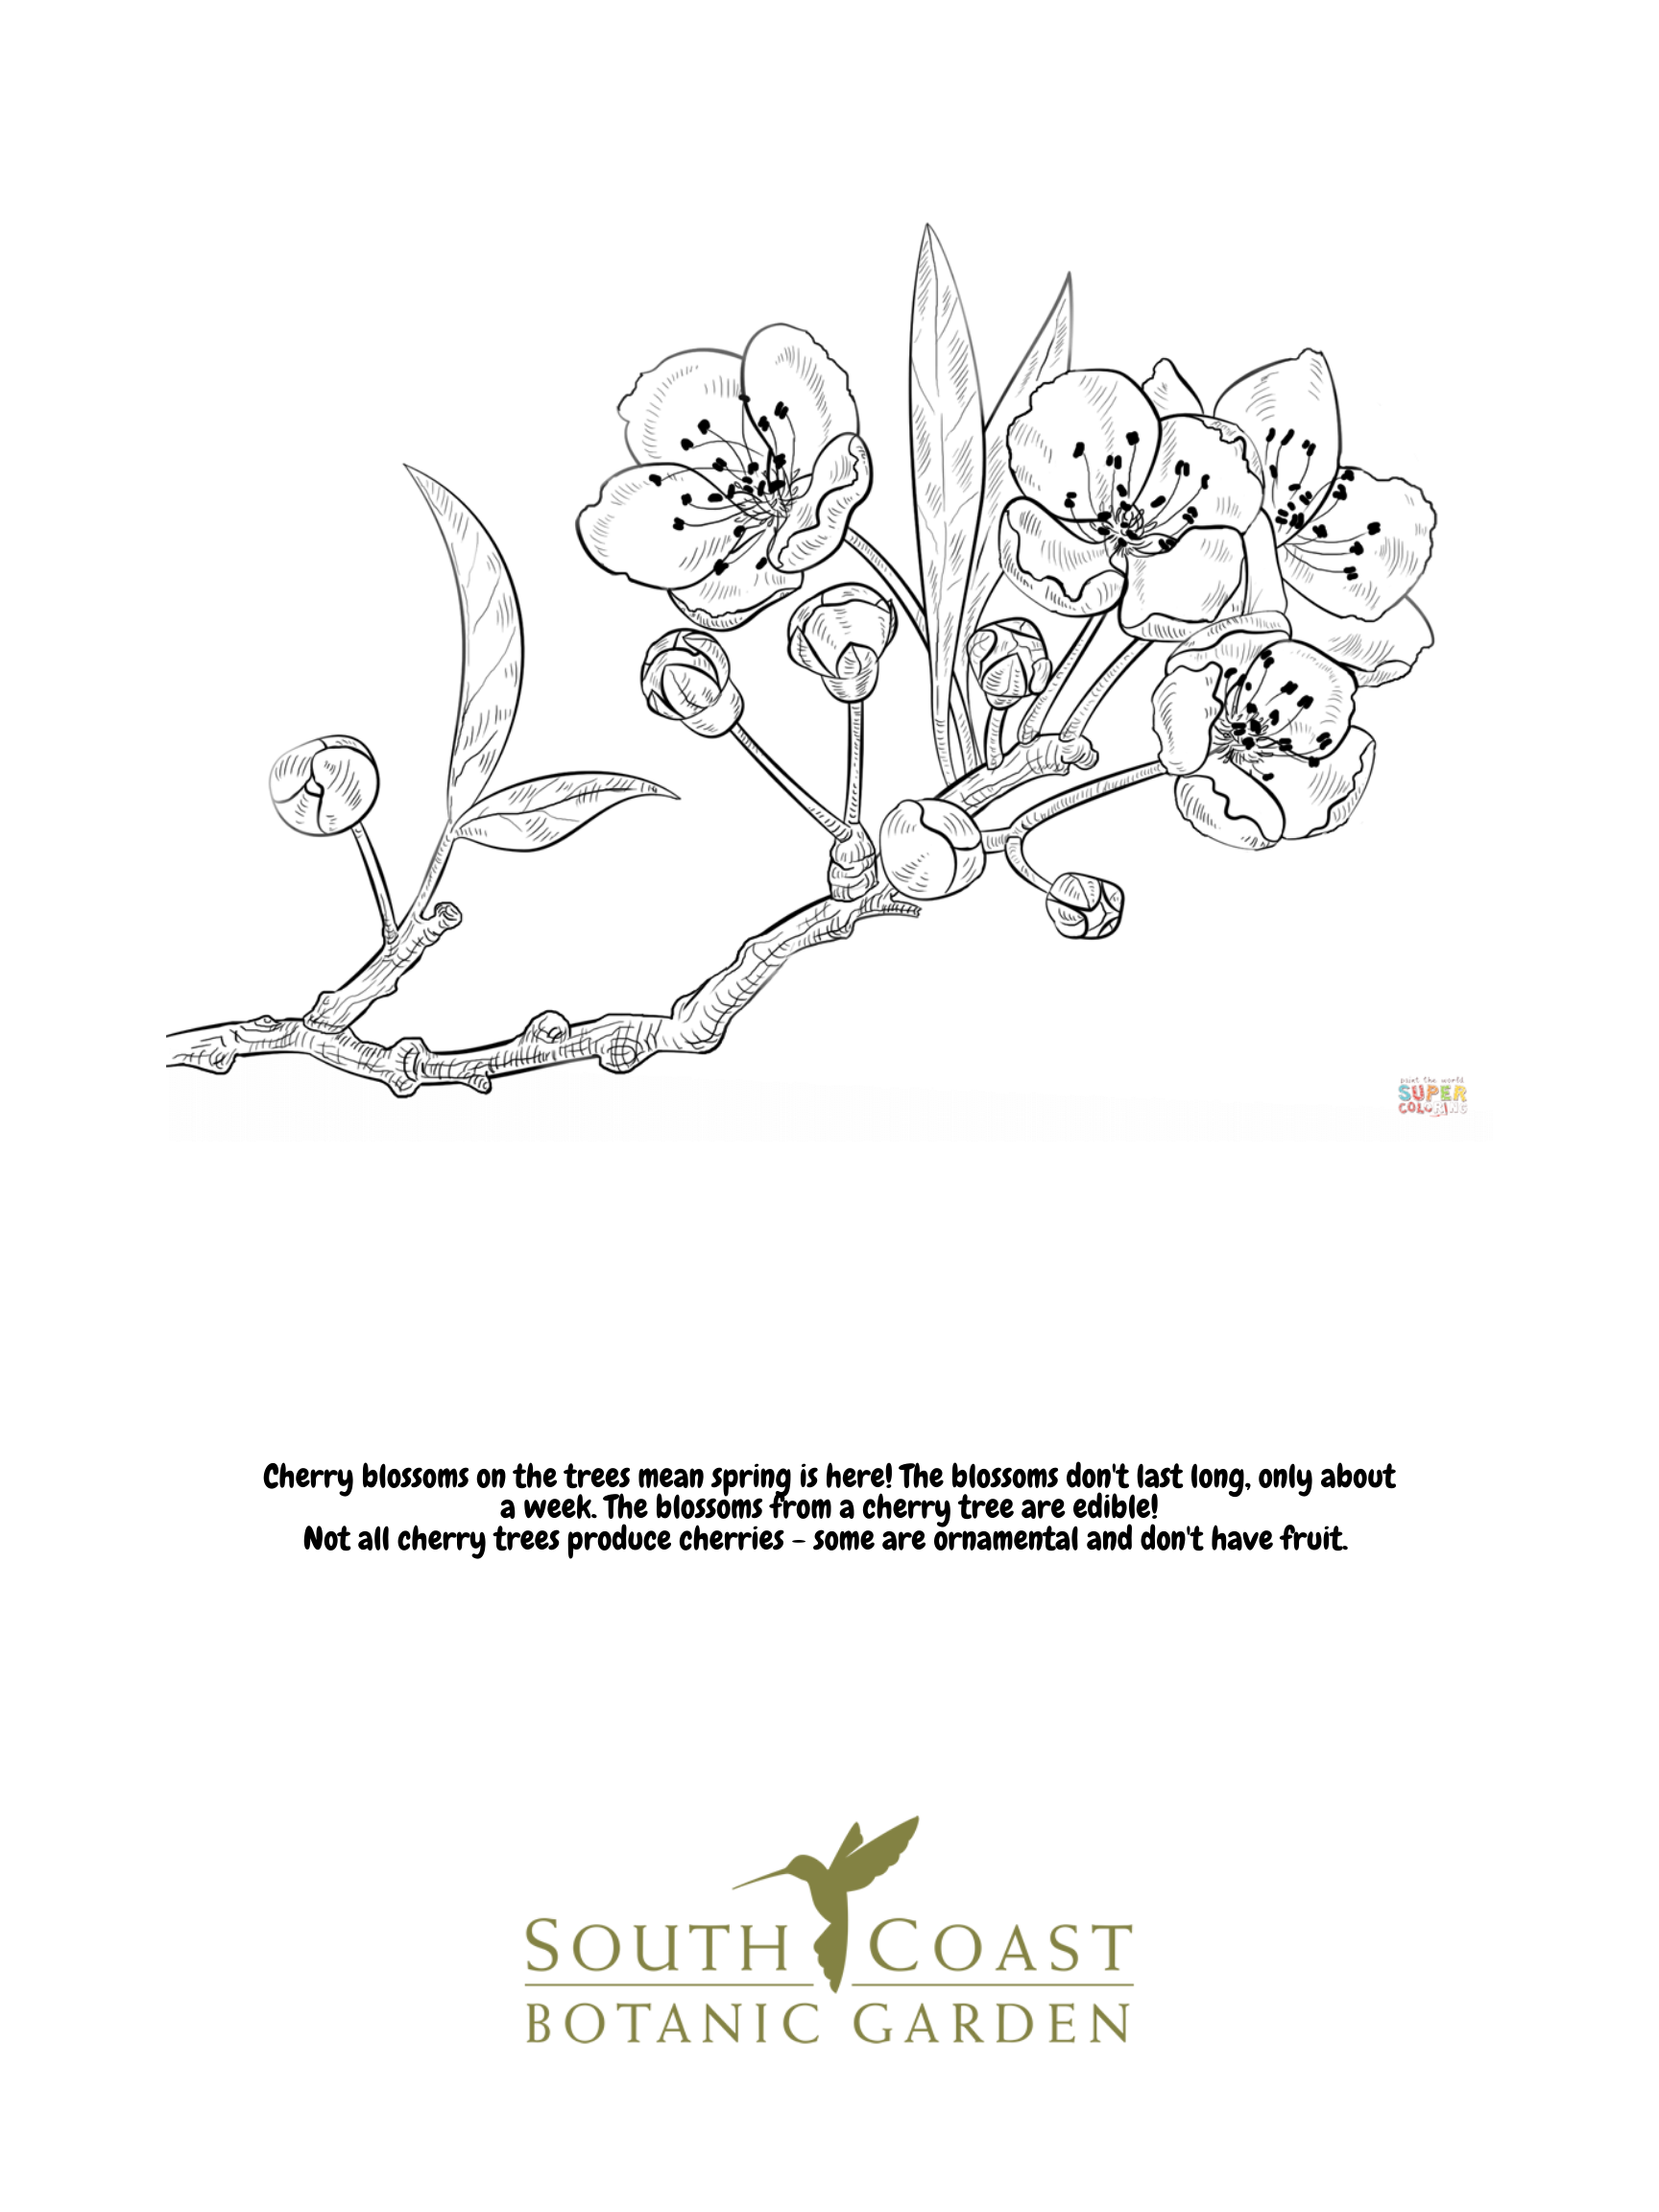 Seeds Of Fun Cherry Blossoms And Cactus Flower Coloring Pages South Coast Botanic Garden Foundation